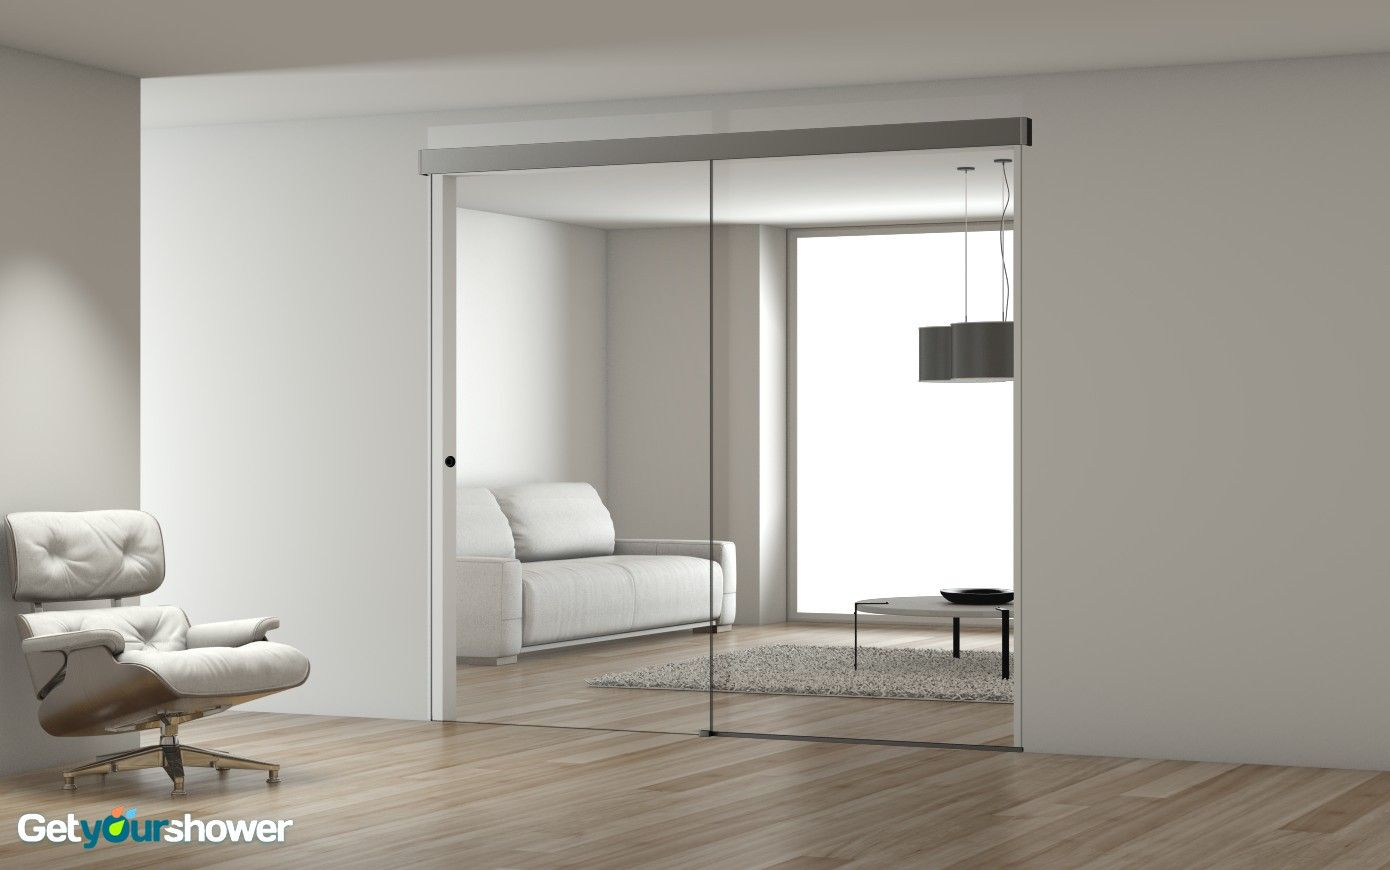 Made to measure glass internal doors google search holiday home made to measure glass internal doors google search planetlyrics Gallery